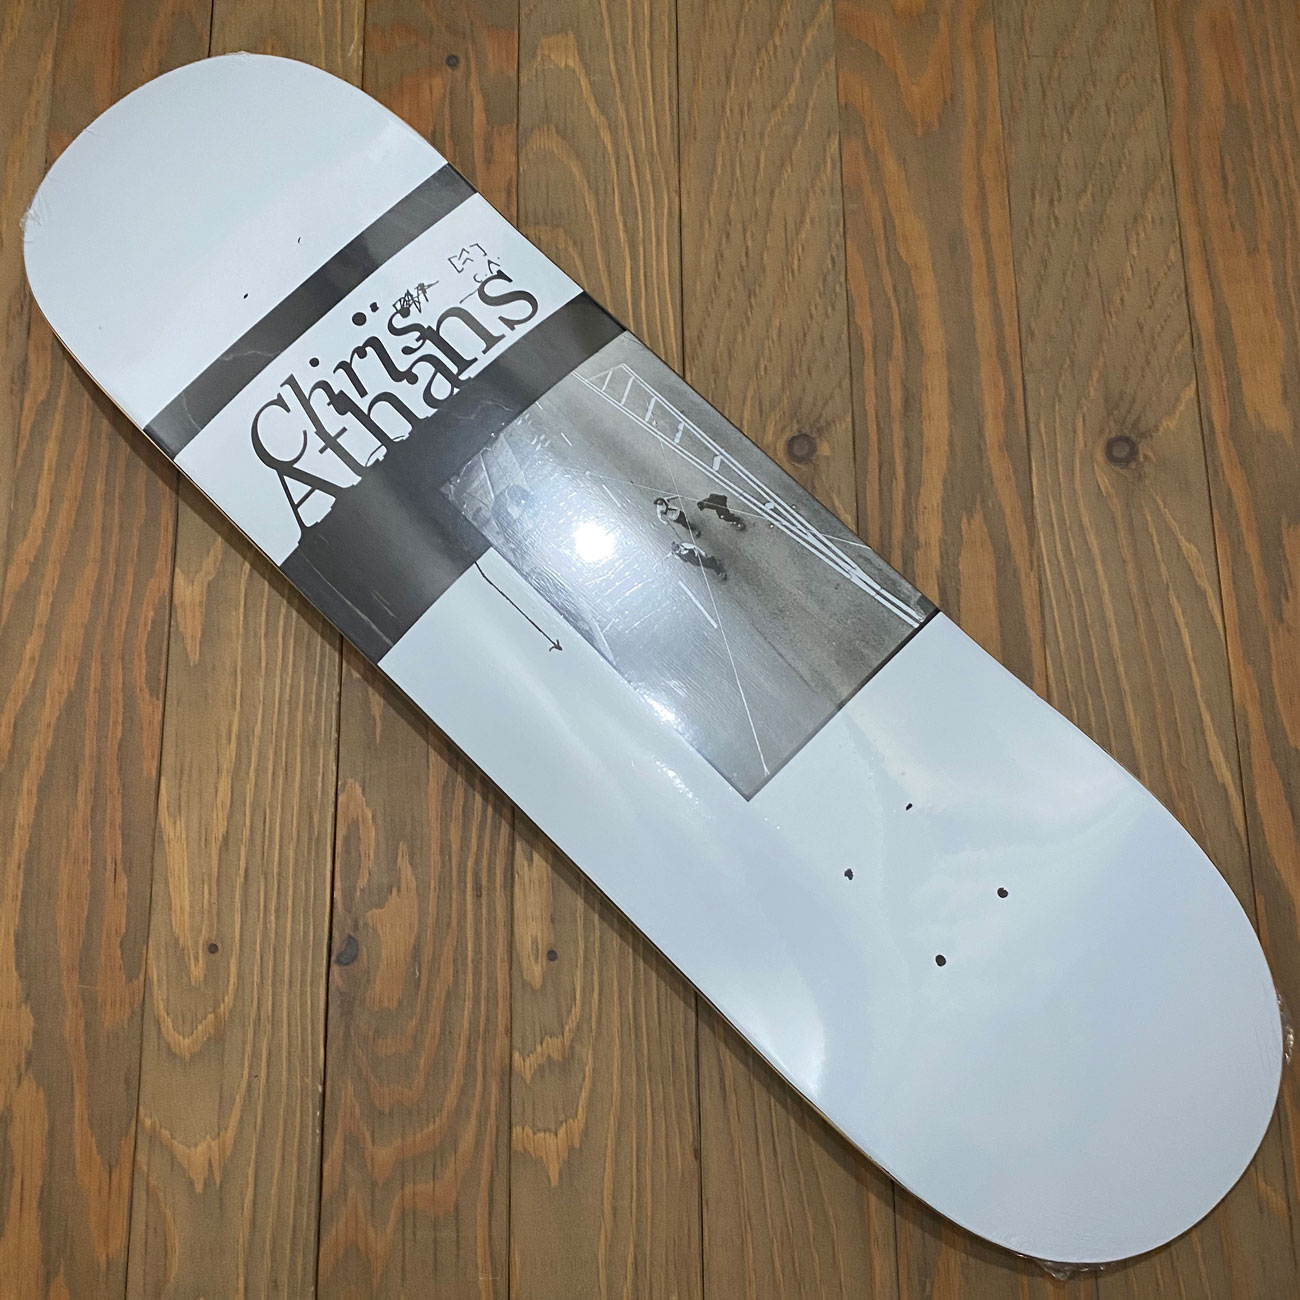 NORTHERN CO CHRIS ATHANS DECK 8.25inch